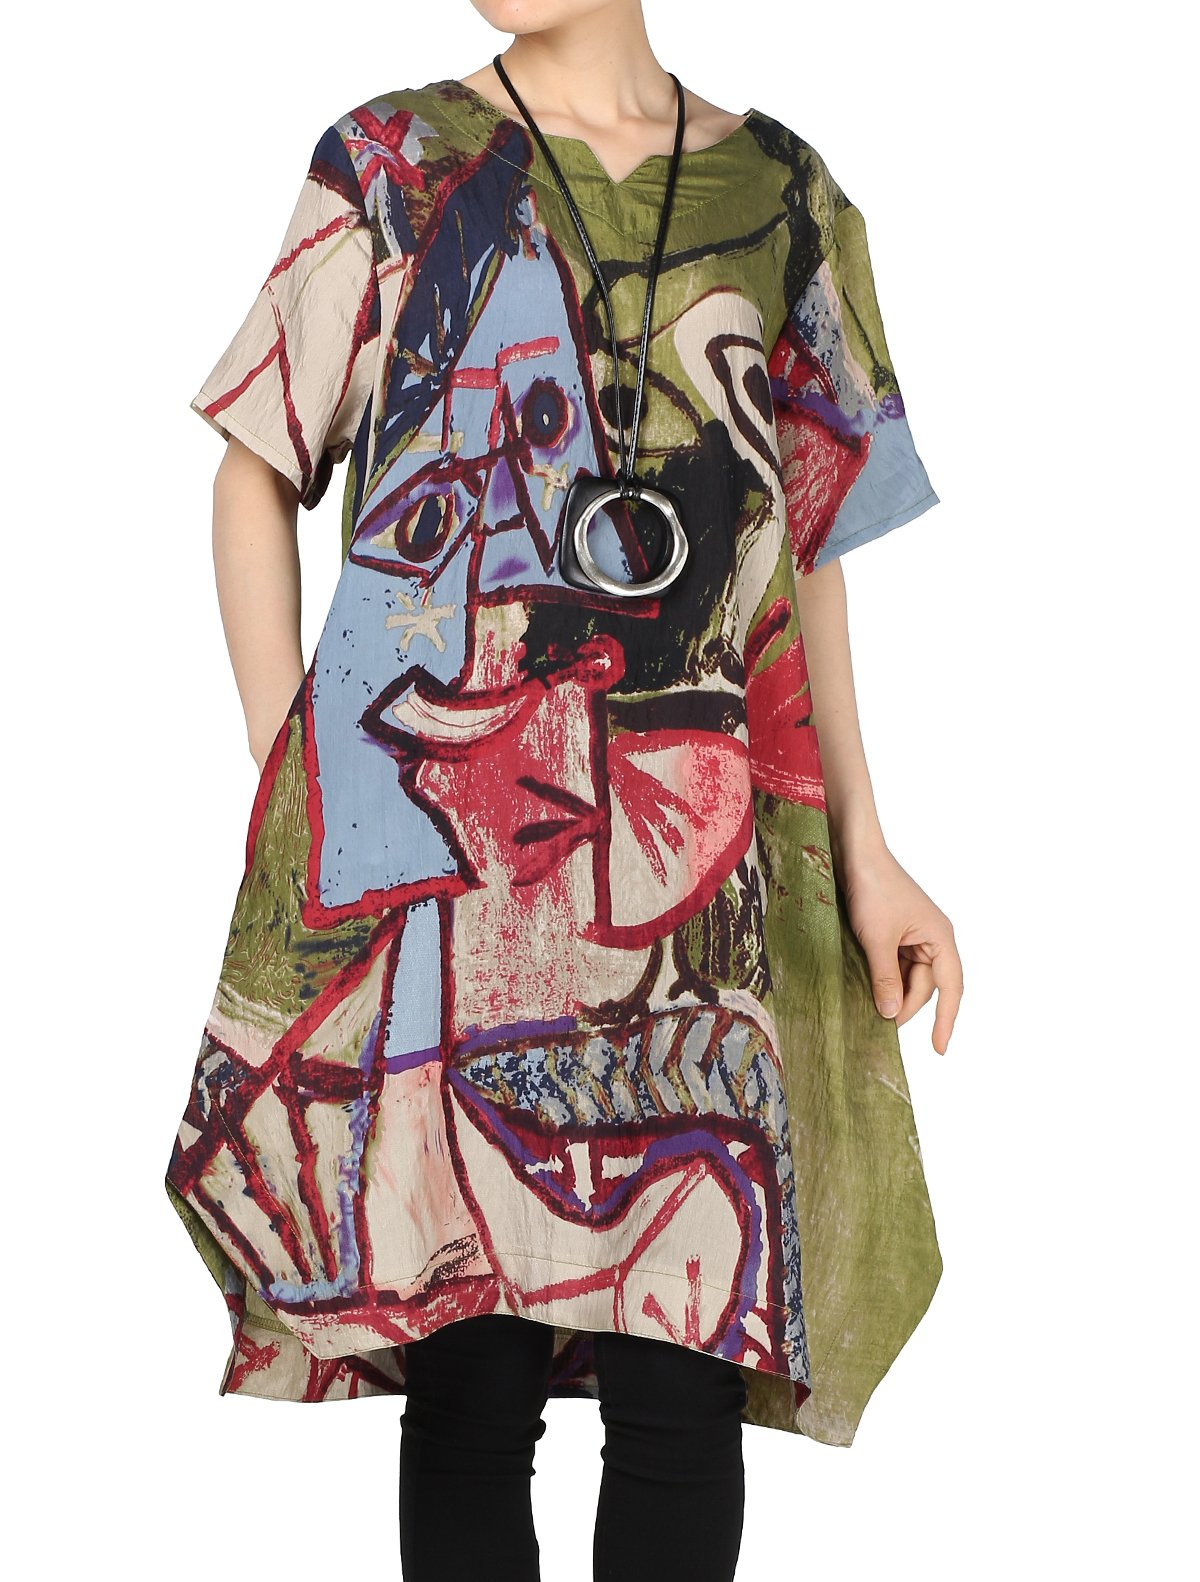 Mordenmiss Women's Summer Abstract Printing Baggy Dress with Pockets XL Green